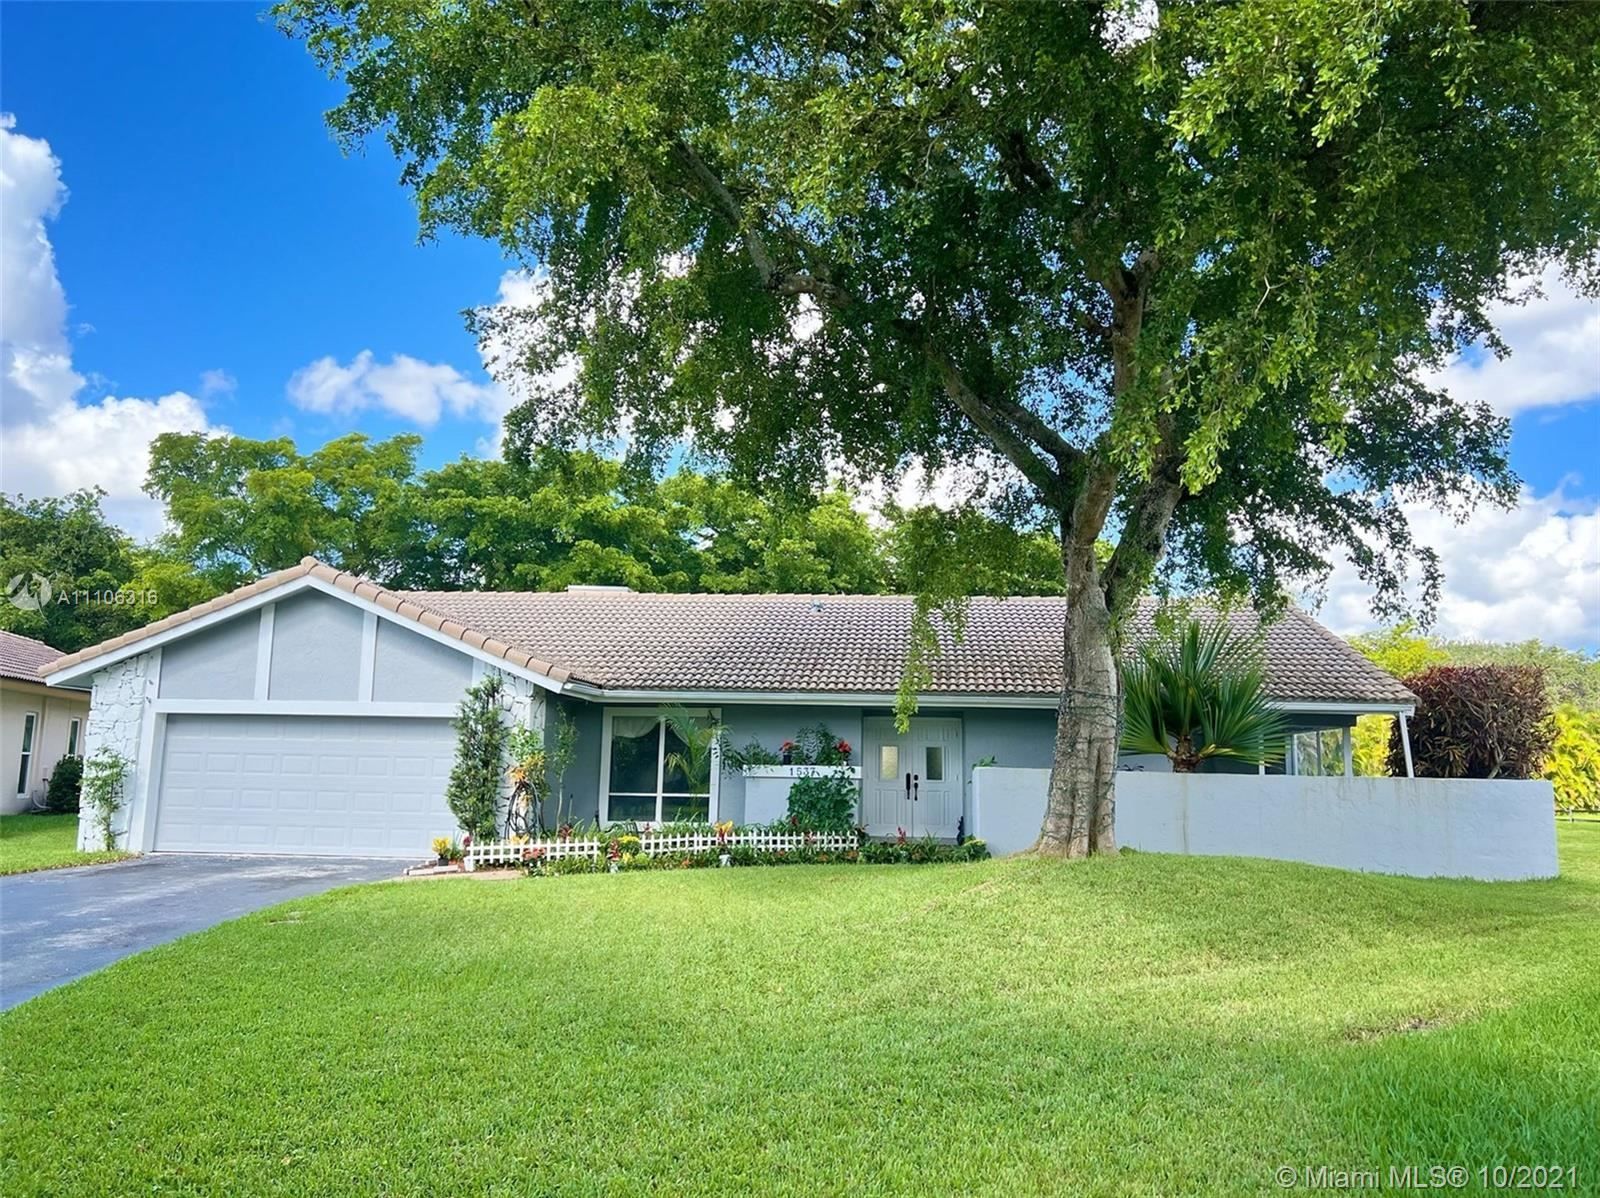 1537 NW 108 WAY, Coral Springs, FL 33071 - #: A11106316